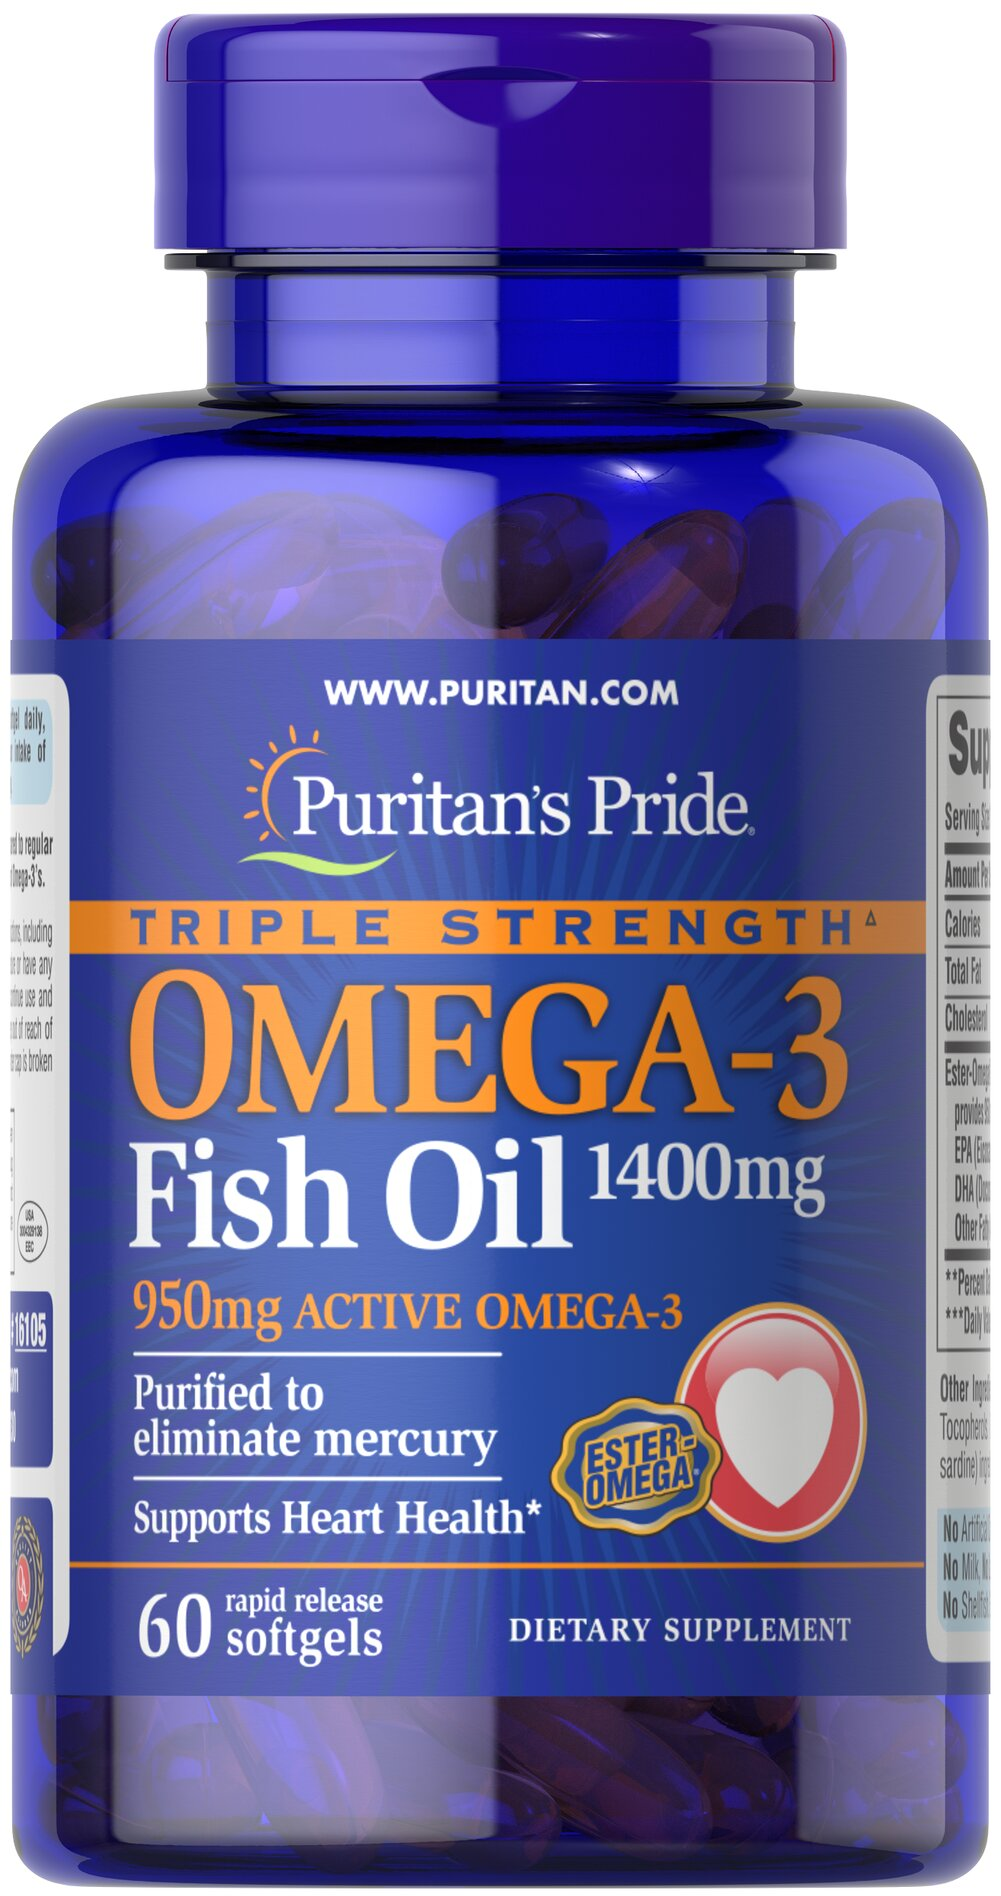 Triple Strength Omega-3 Fish Oil 1360 mg (950 mg Active Omega-3) Thumbnail Alternate Bottle View